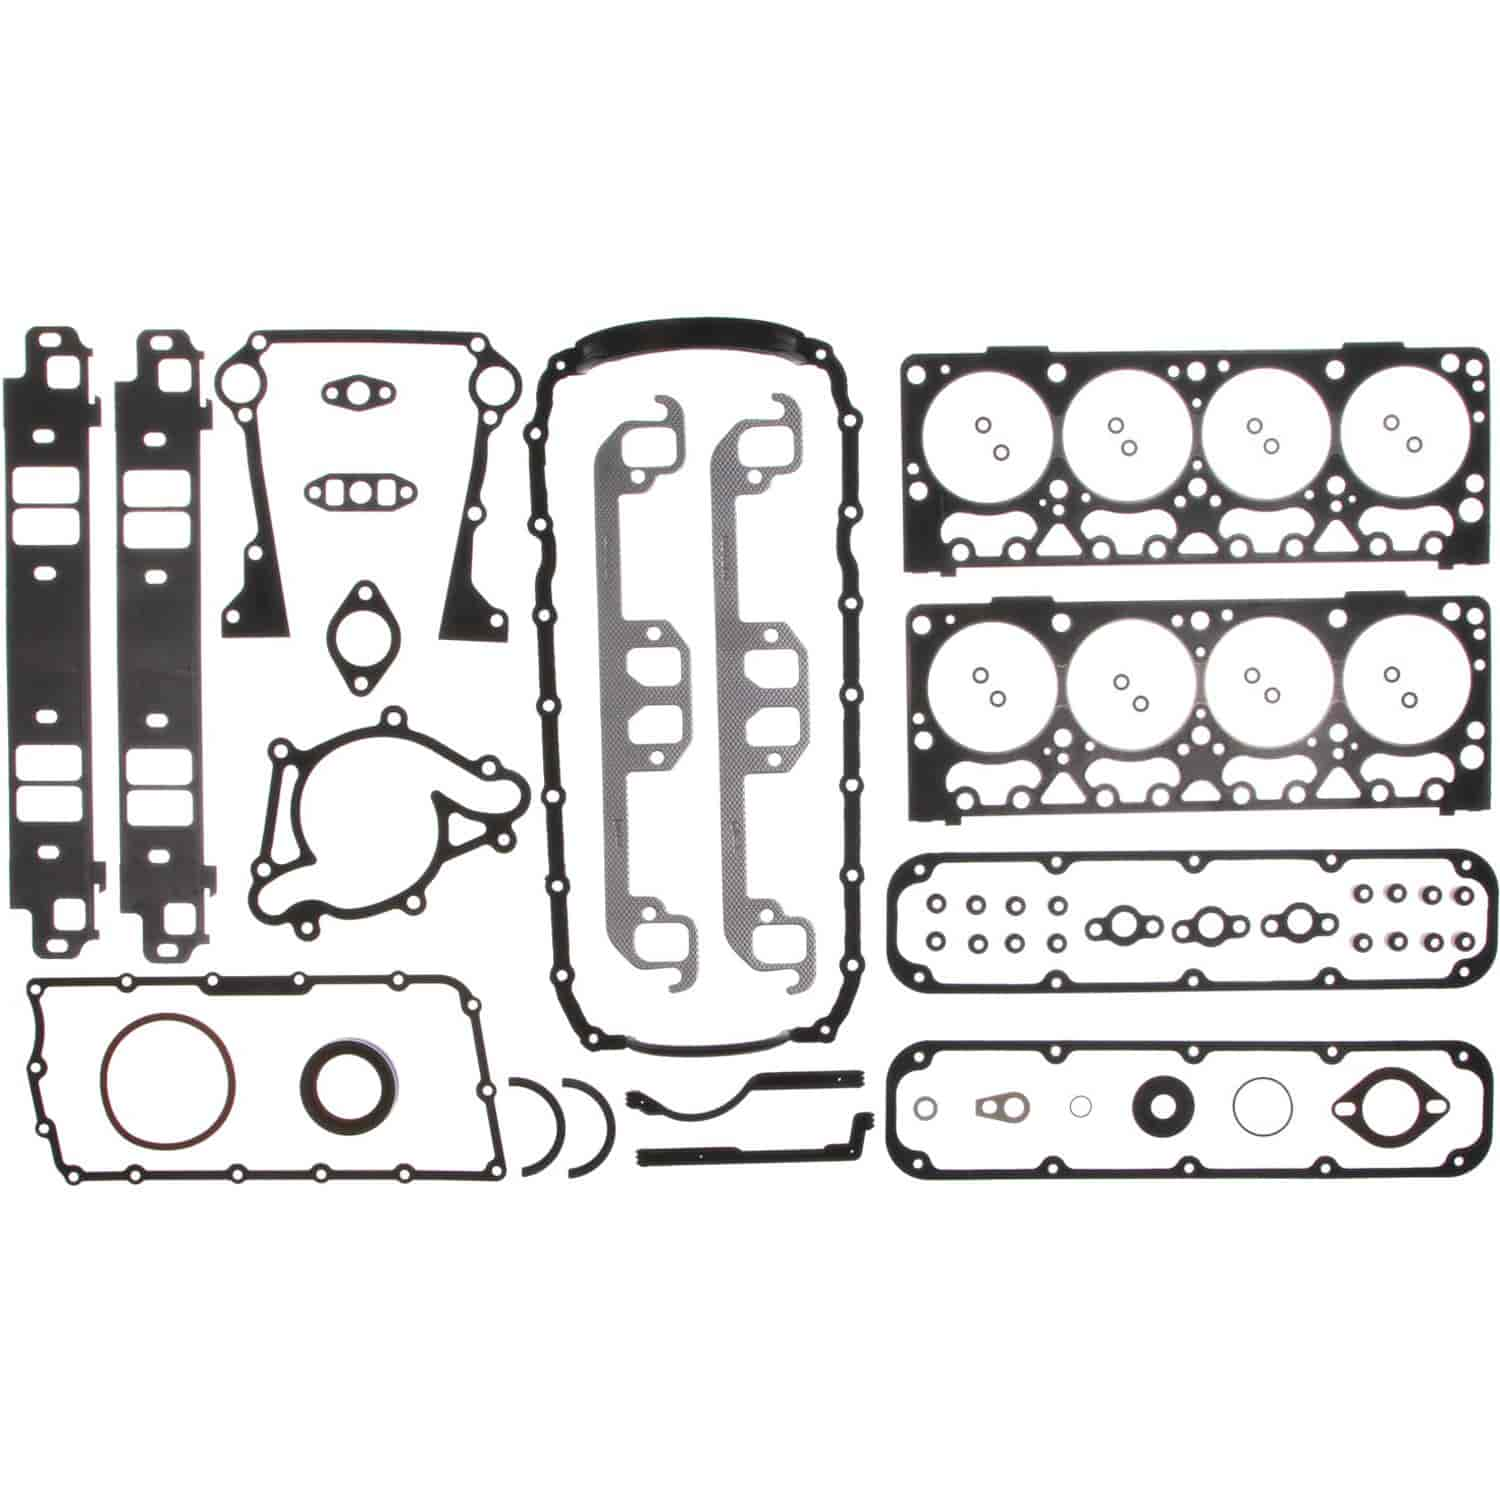 Clevite Mahle Engine Kit Gasket Set